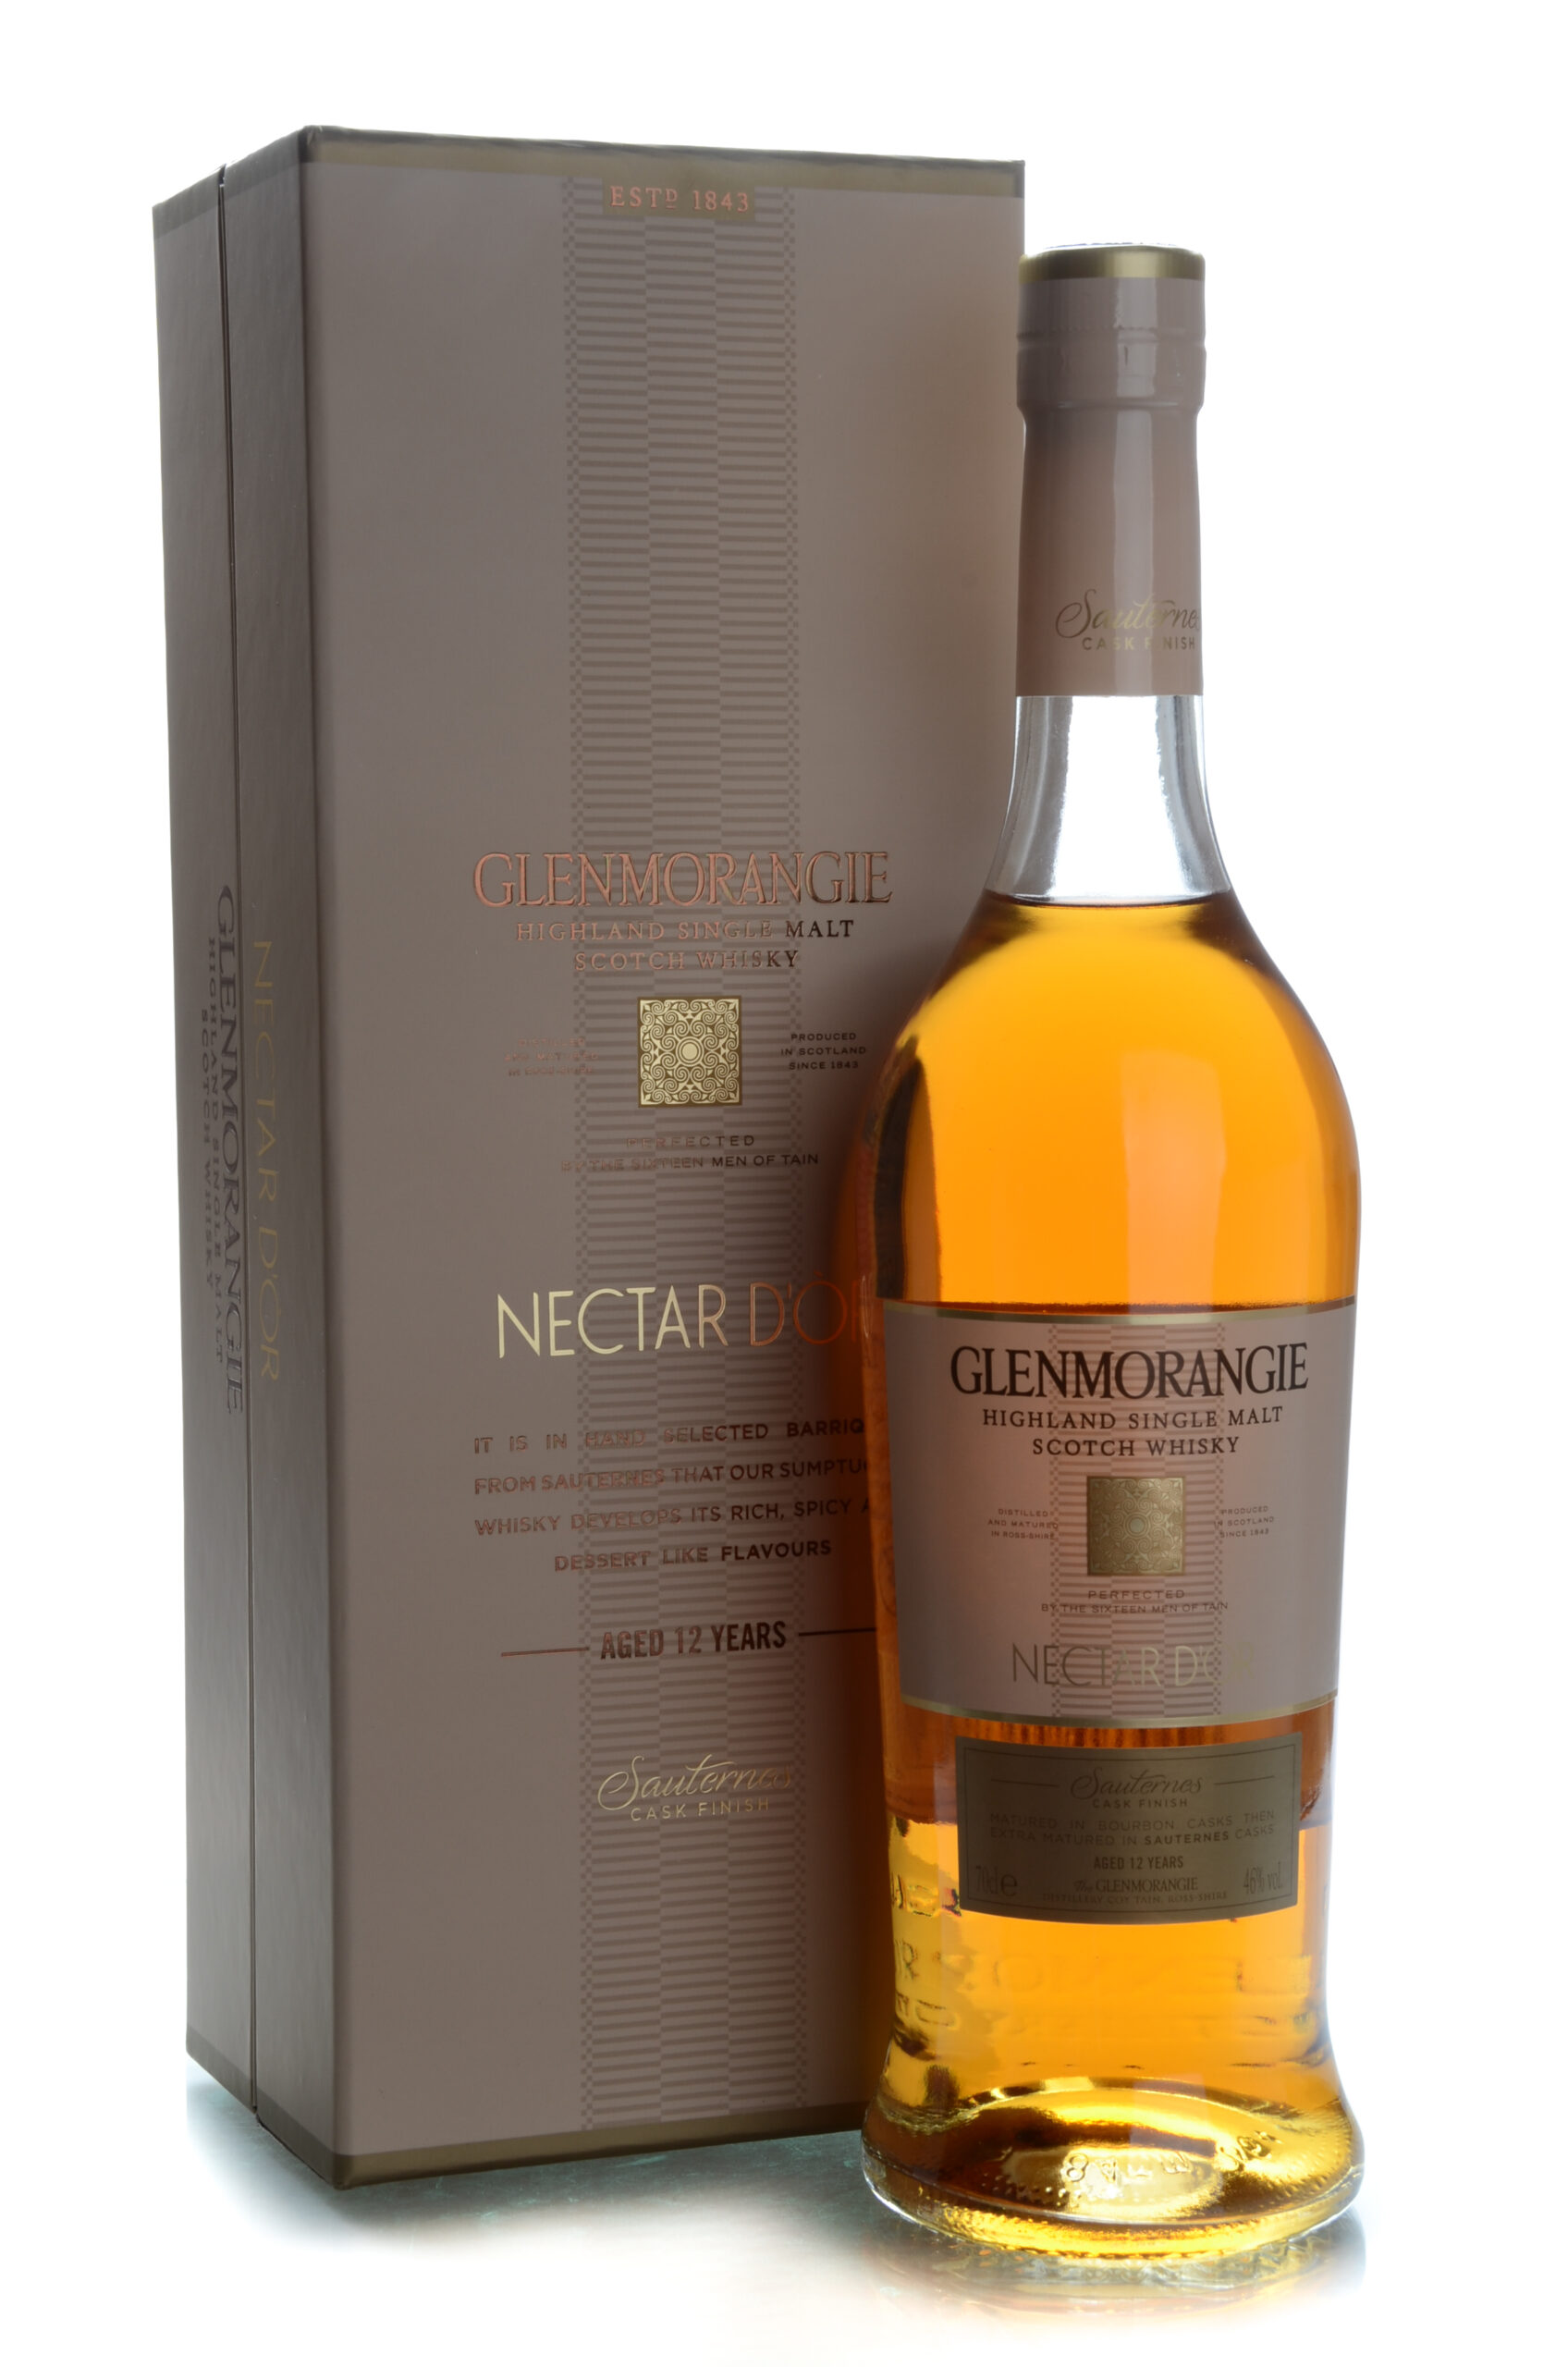 Glenmorangie Nectar D'Or 12 years Sauternes cask finish